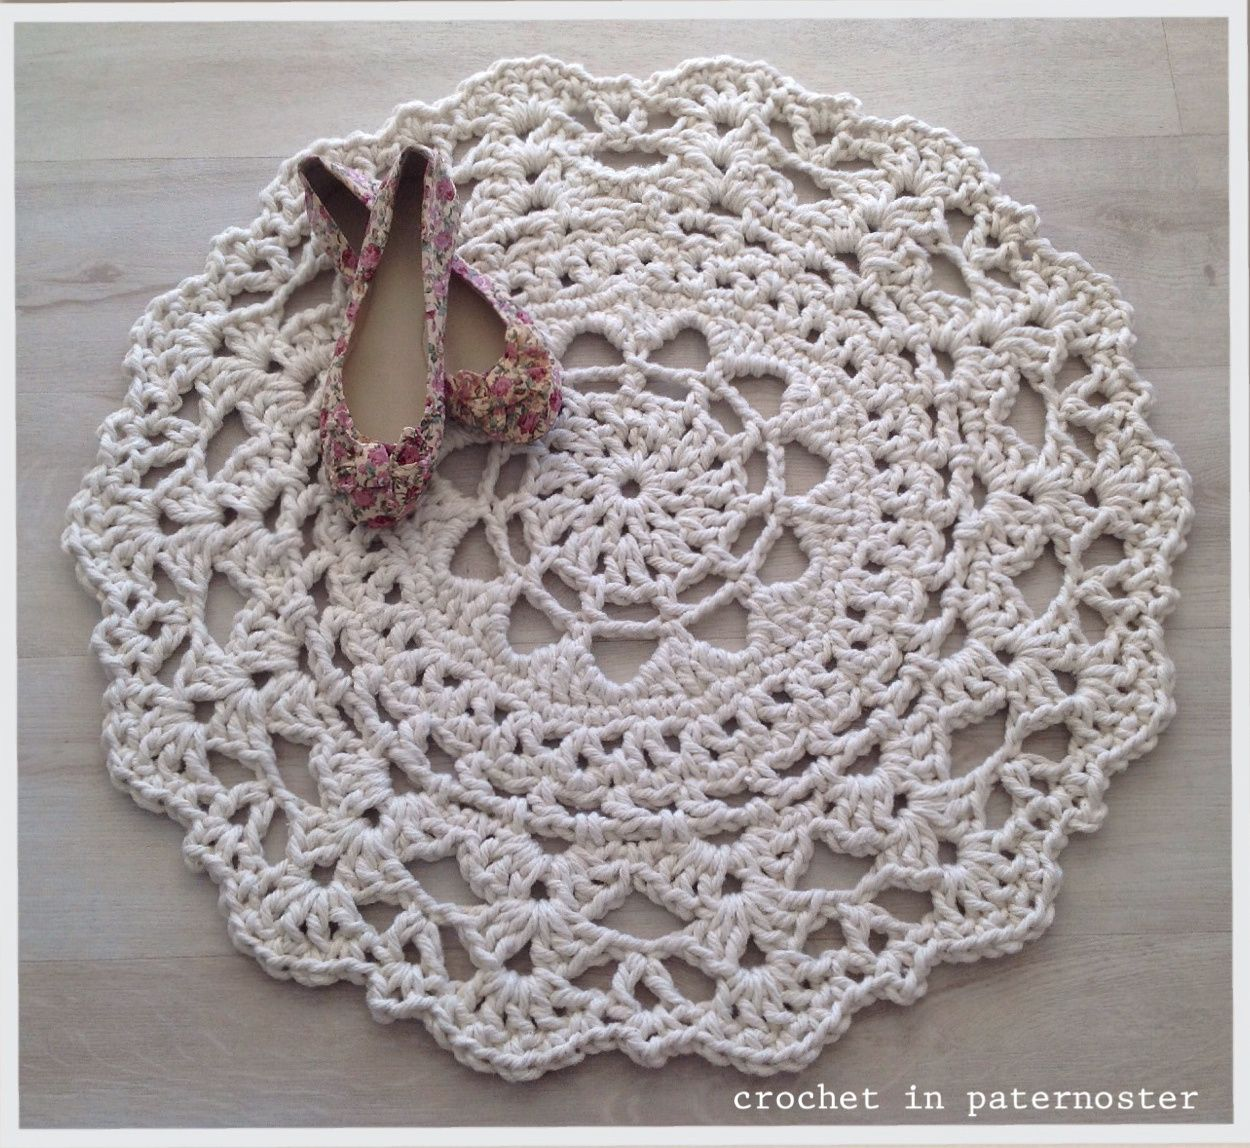 Crochet Doily Rugs With T Shirt Yarn In Paternoster